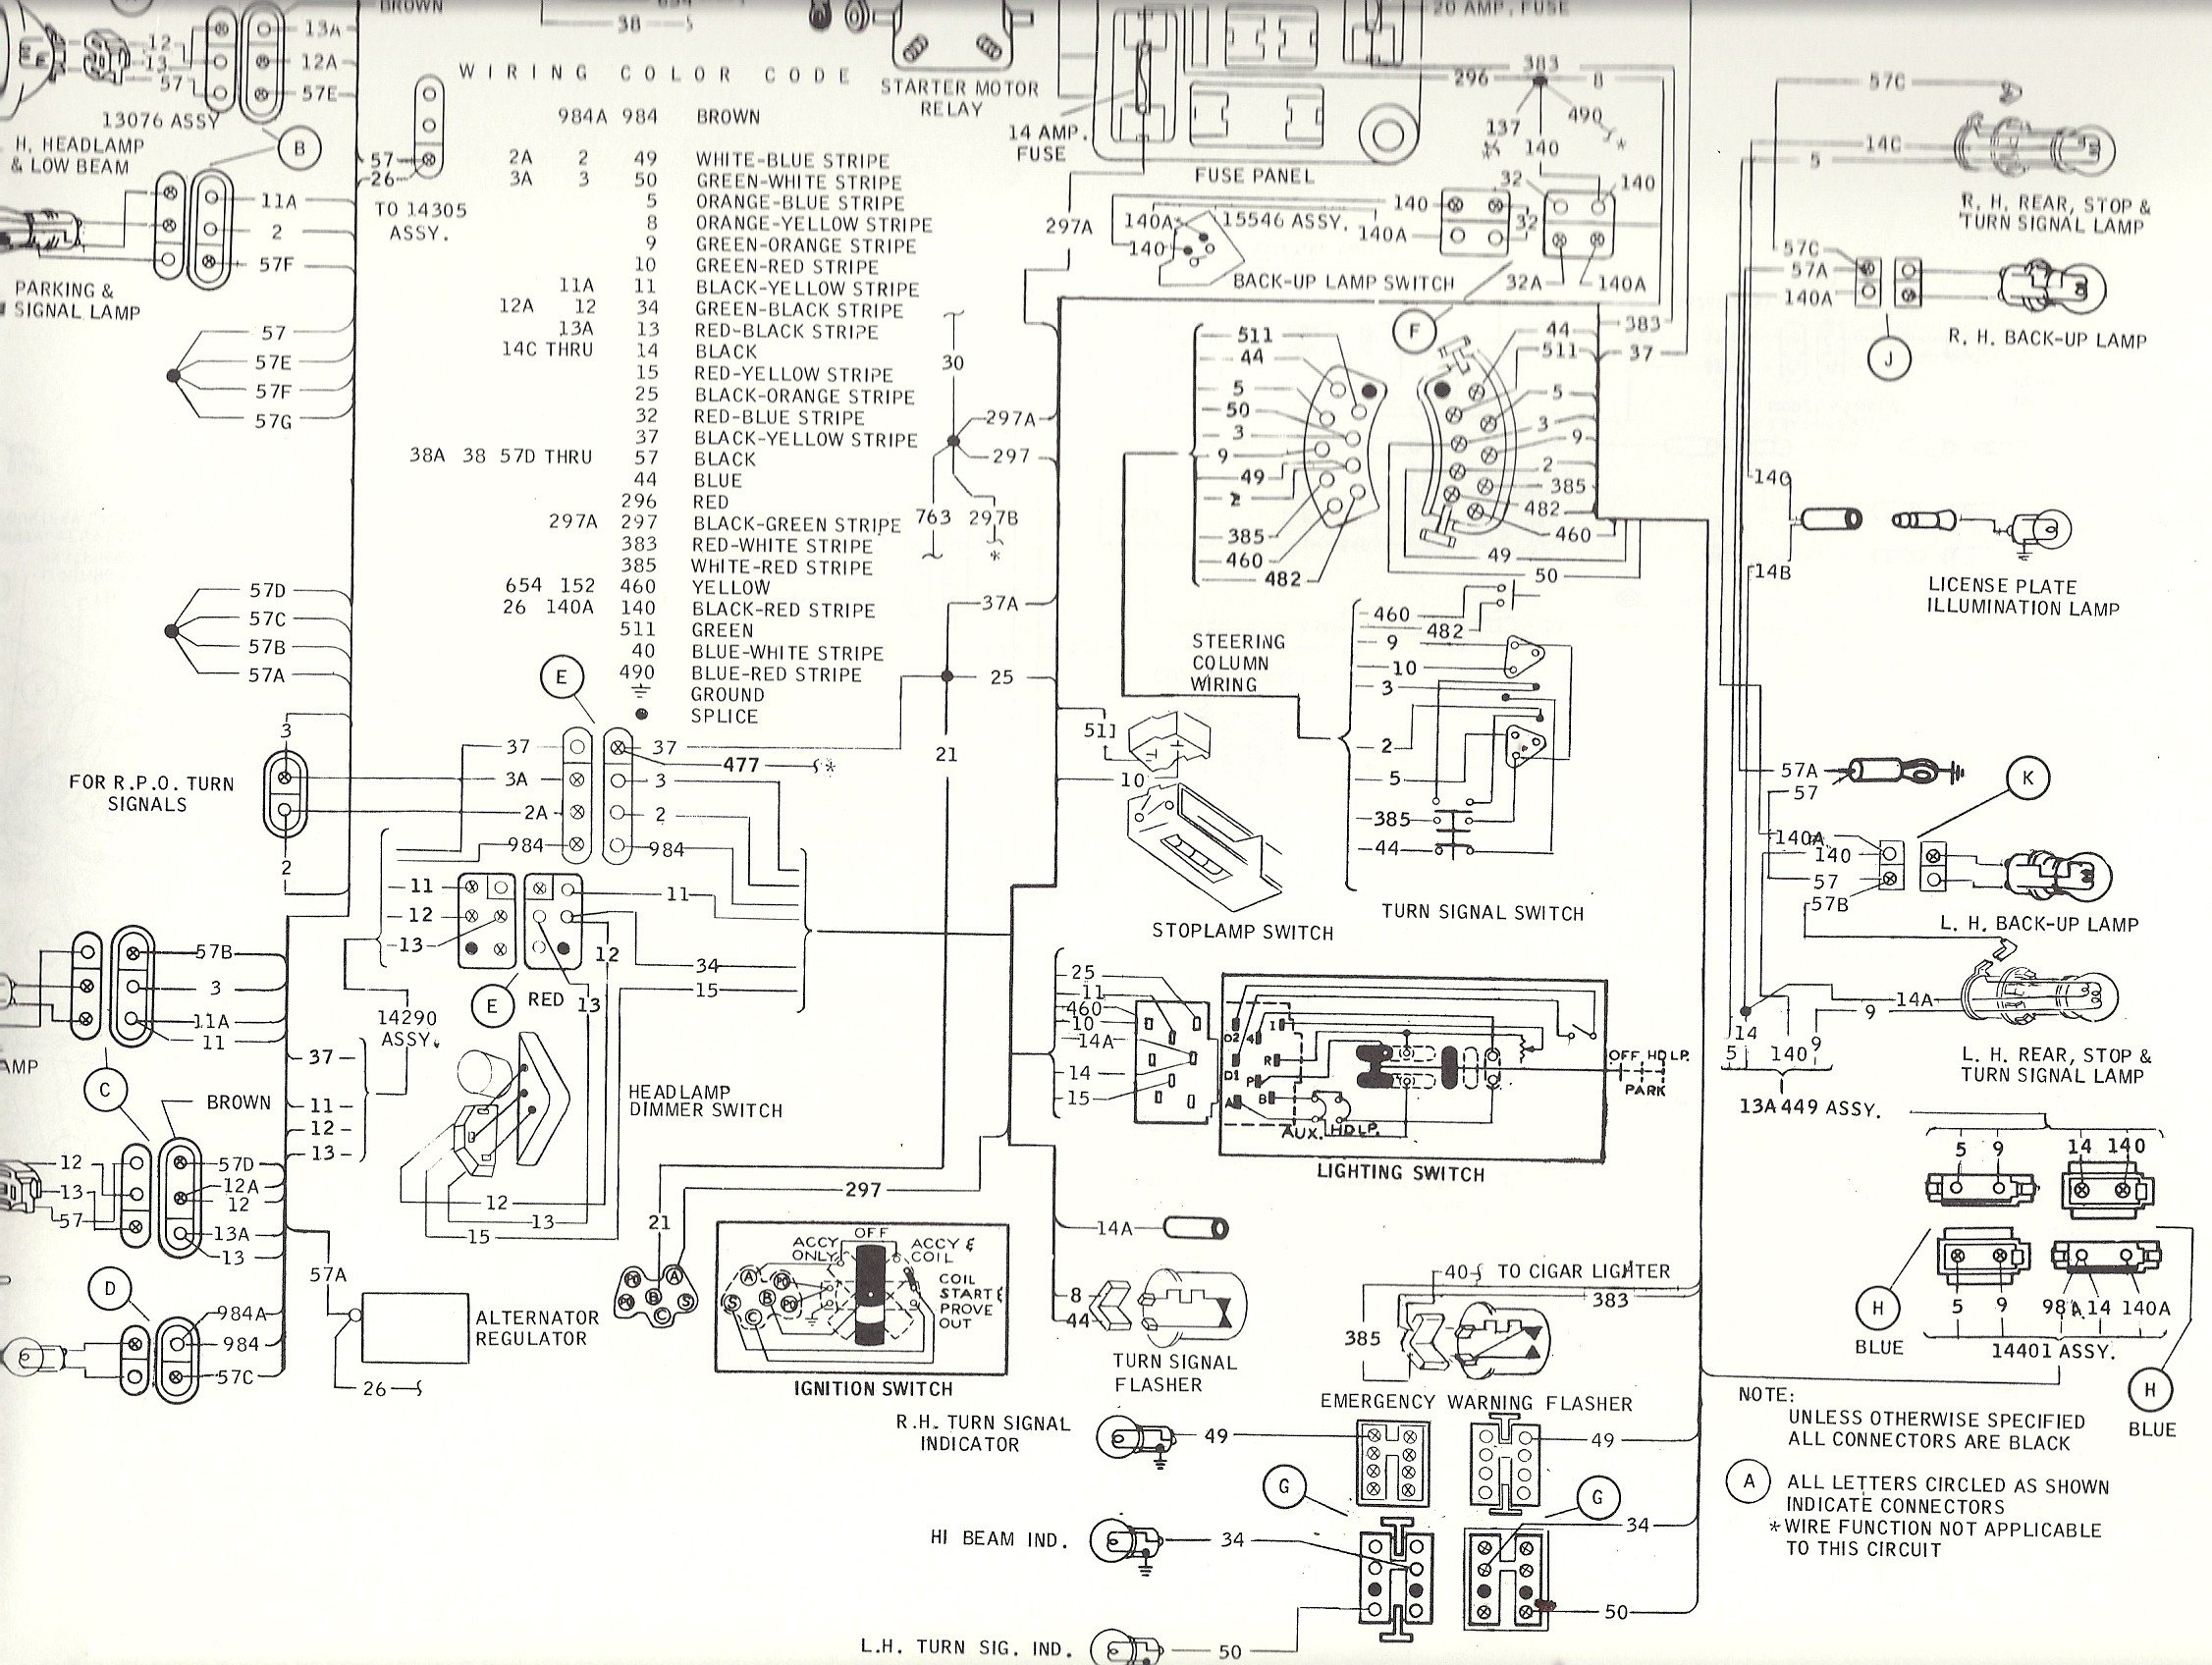 1967 Ford Mustang Ignition Wiring Diagram Just Another F 100 Diagrams Coil 1969 Simple Rh 40 Terranut Store Pdf